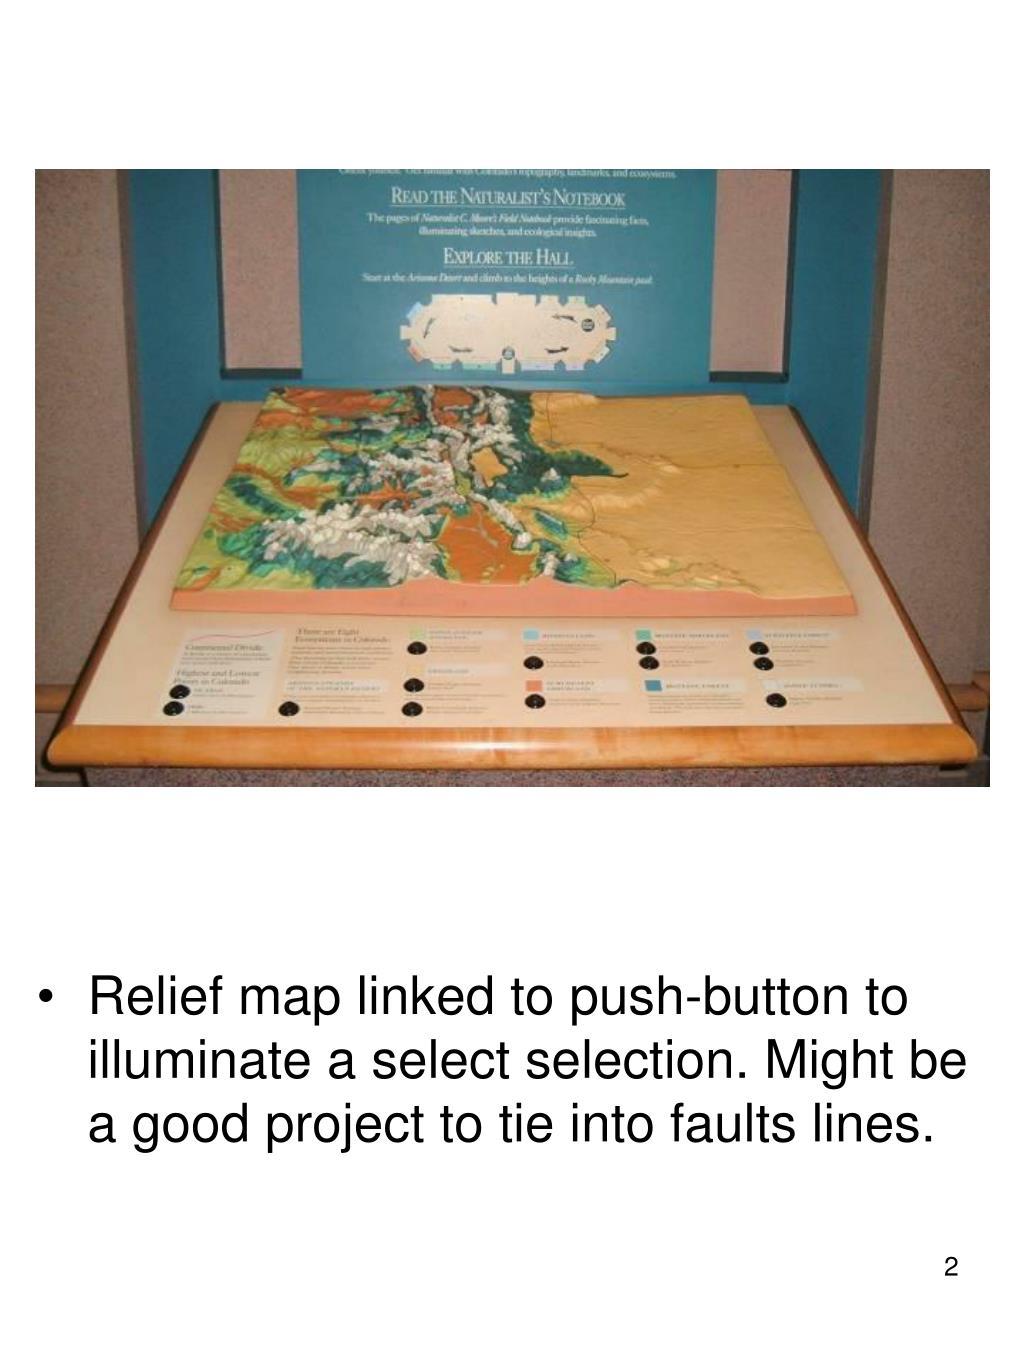 Relief map linked to push-button to illuminate a select selection. Might be a good project to tie into faults lines.